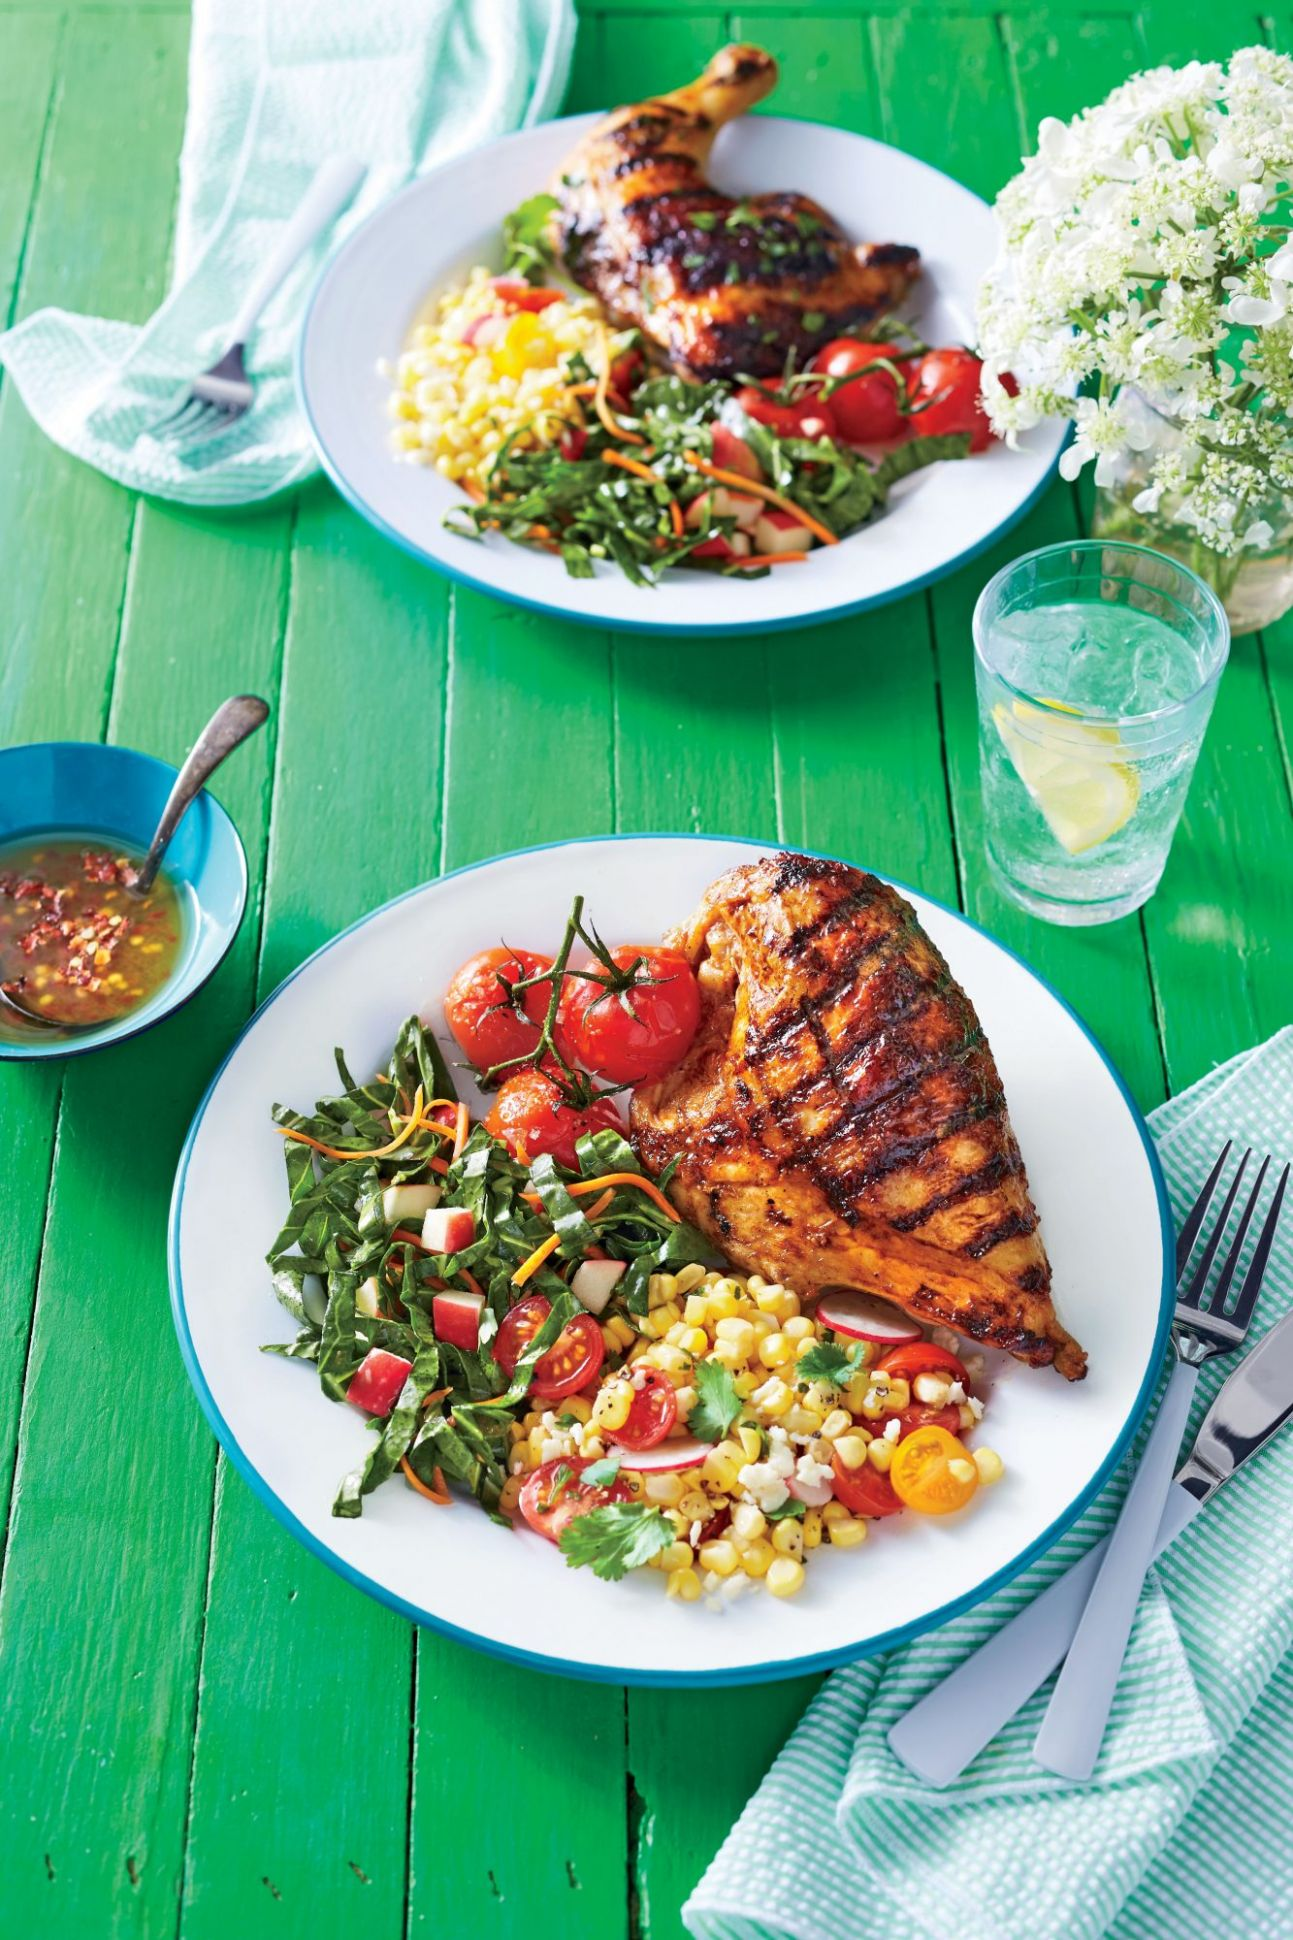 12 Summer Chicken Recipes the Whole Crowd Will Love | Southern Living